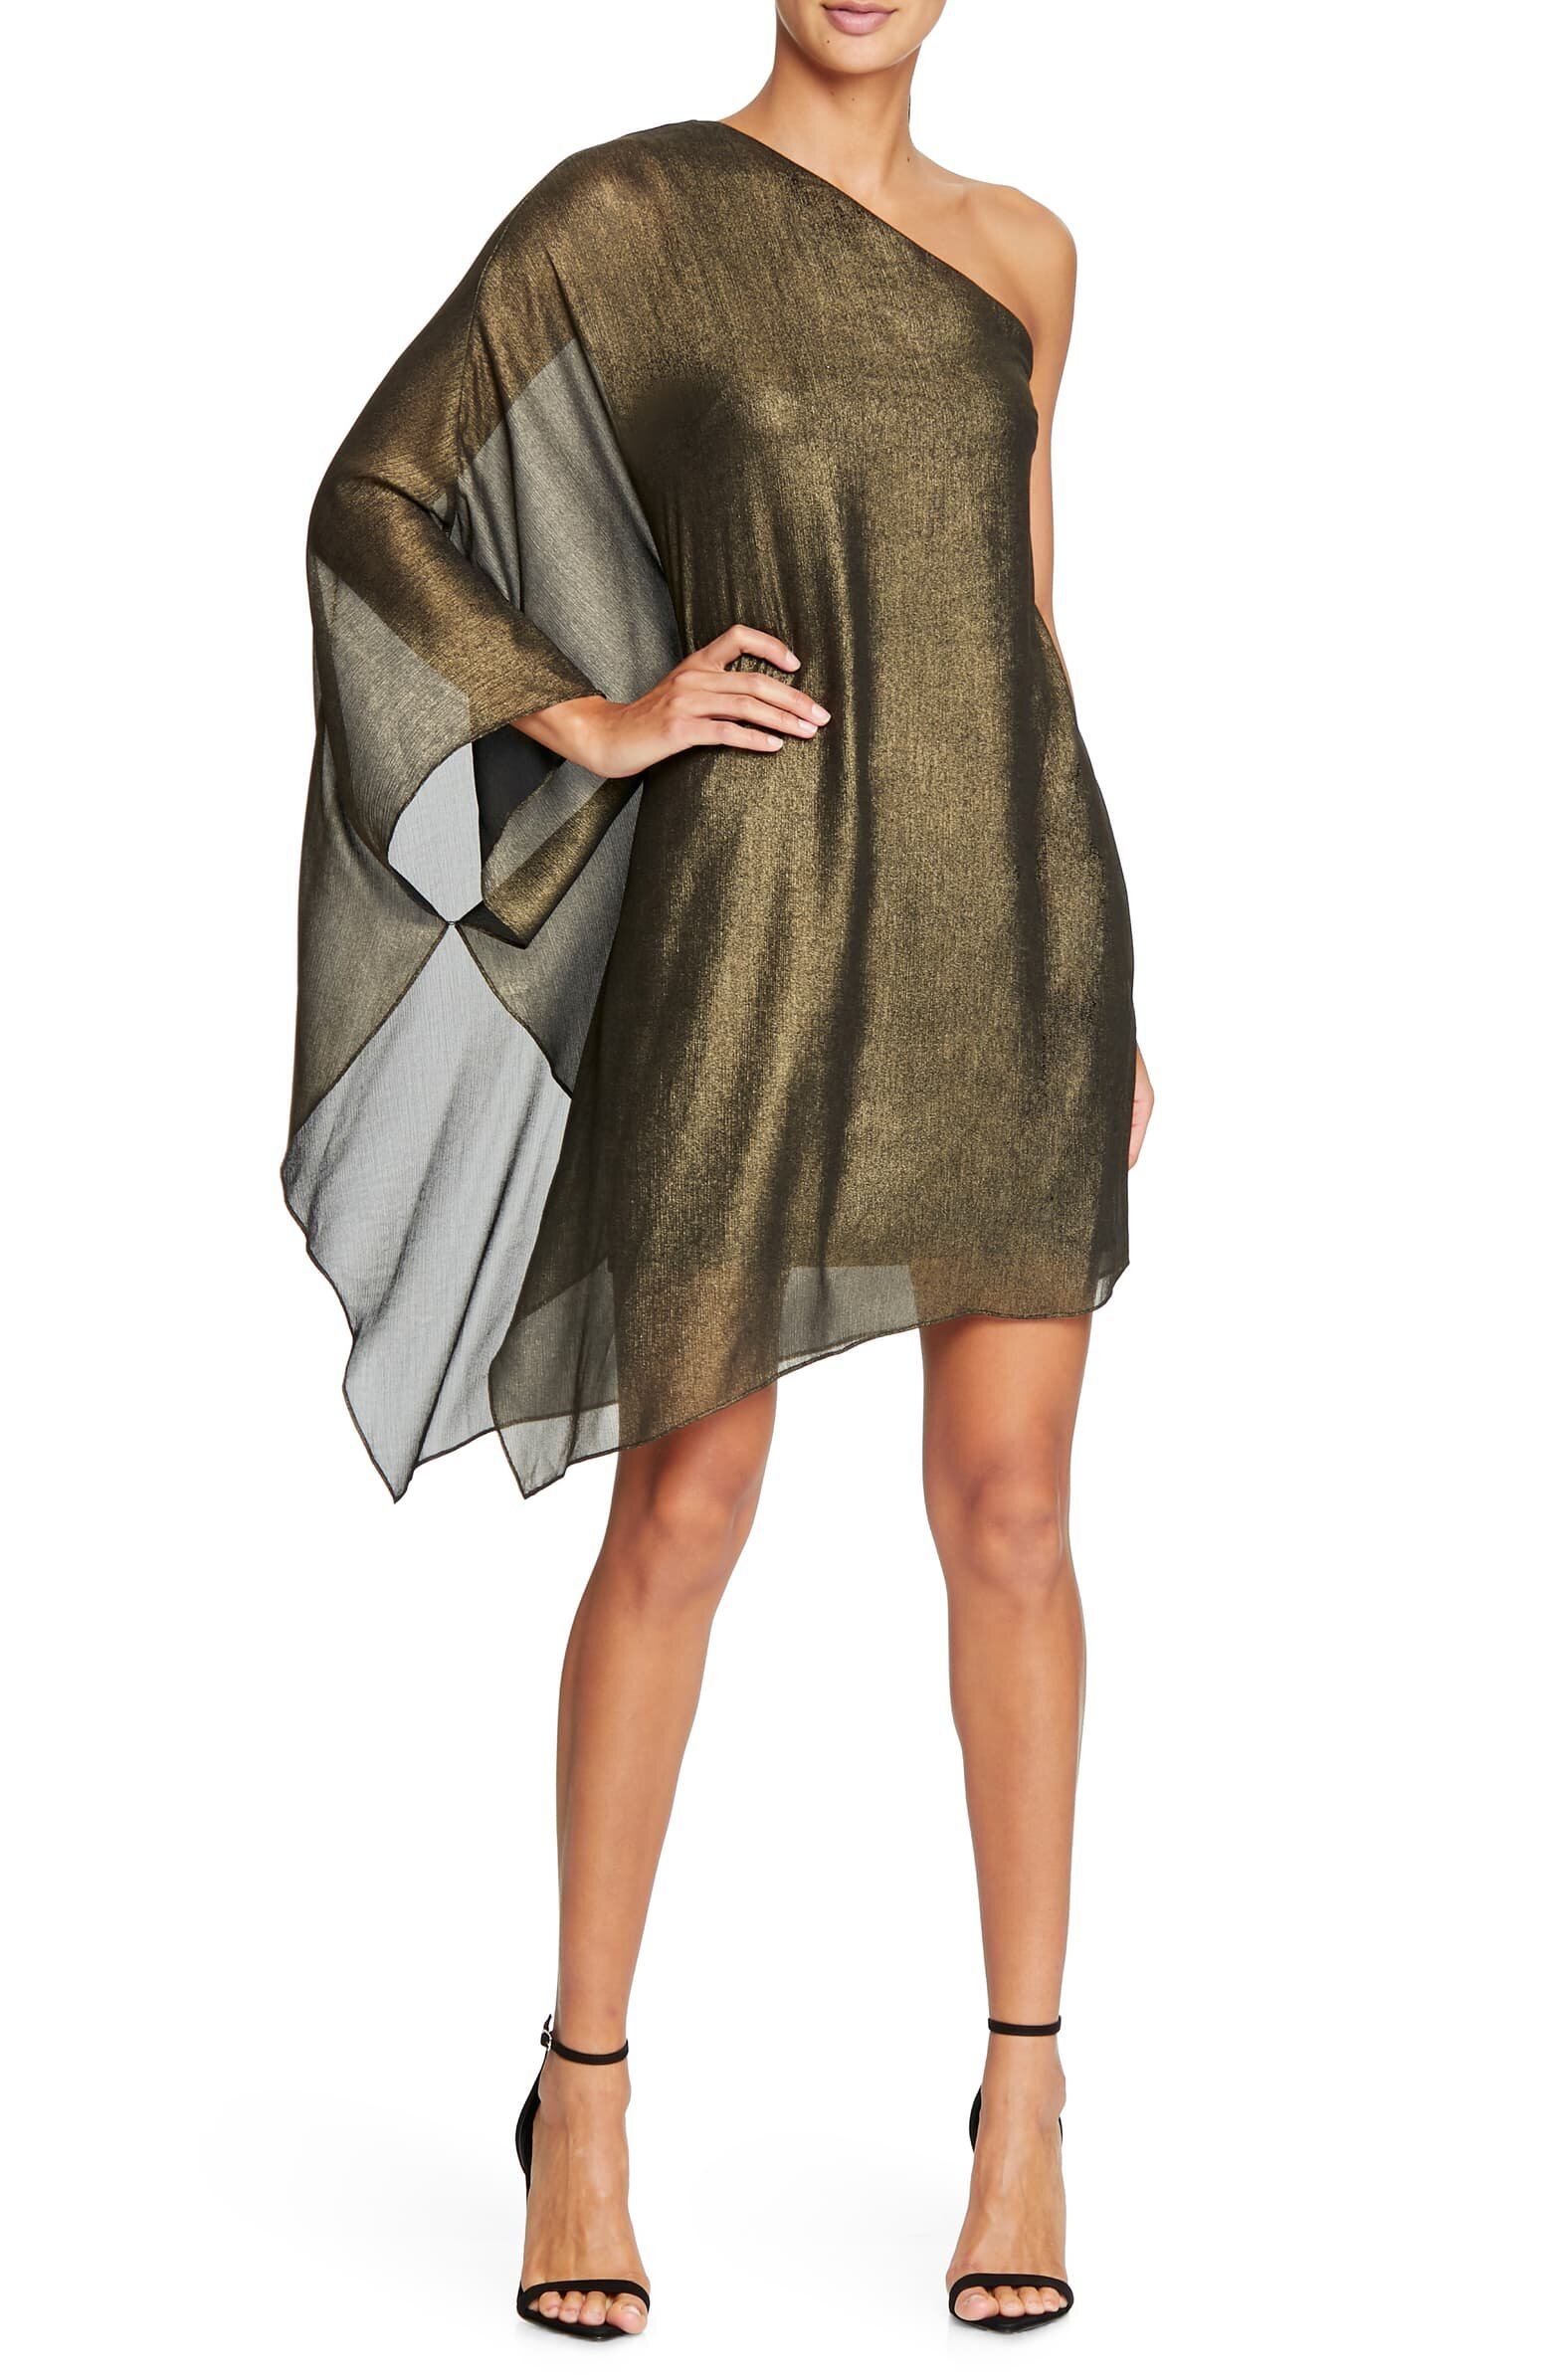 This beautiful, metallic dress is both chic and elegant - you can find it at Nordstrom.